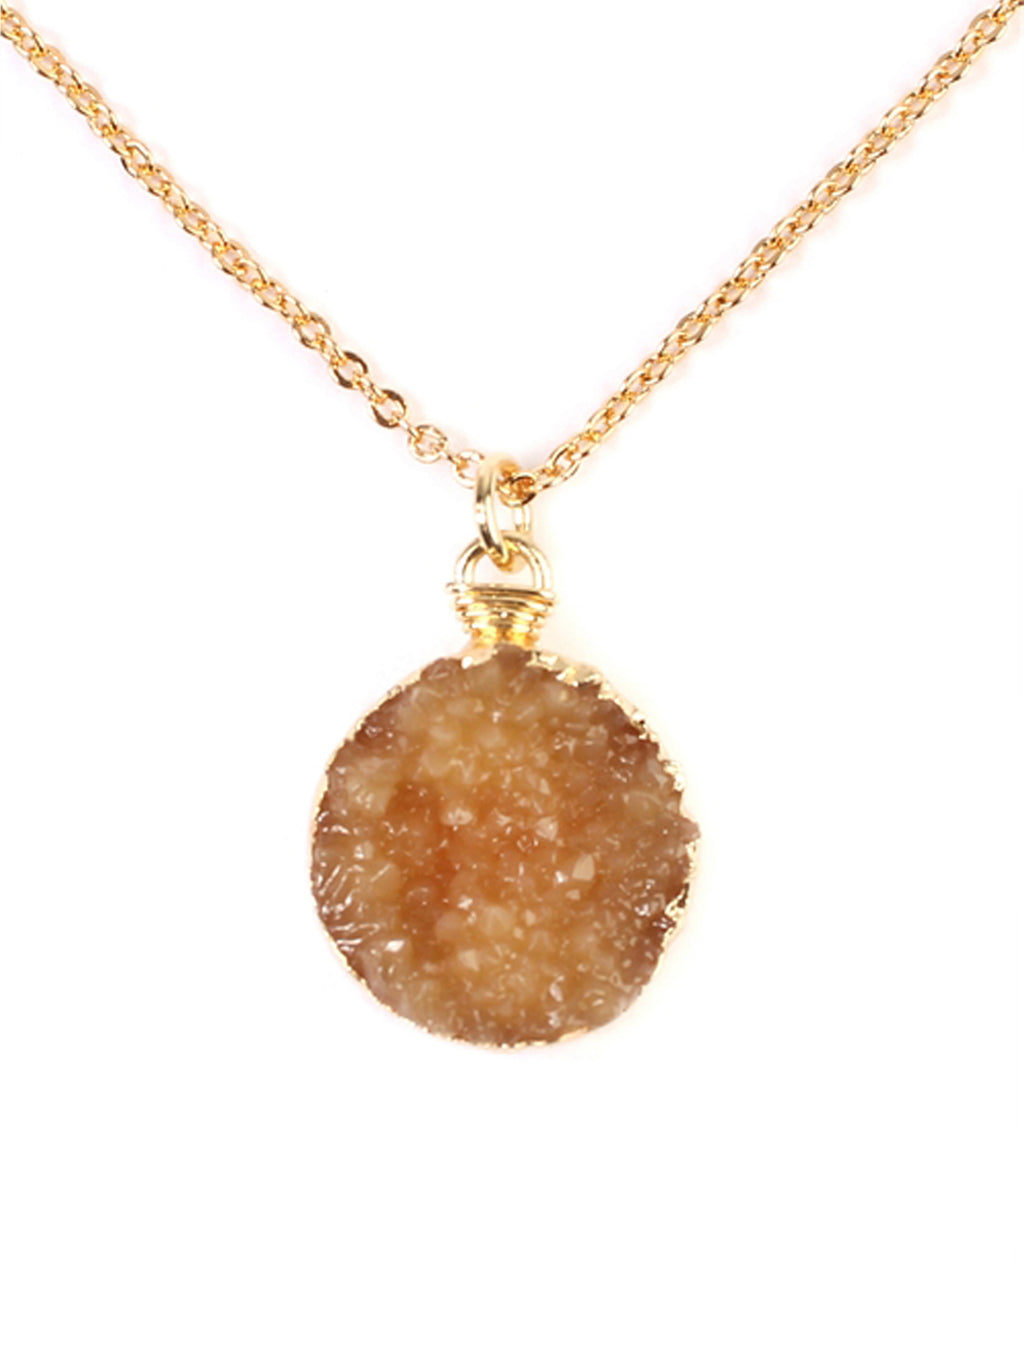 Druzy Pendant Gold Chain Necklace